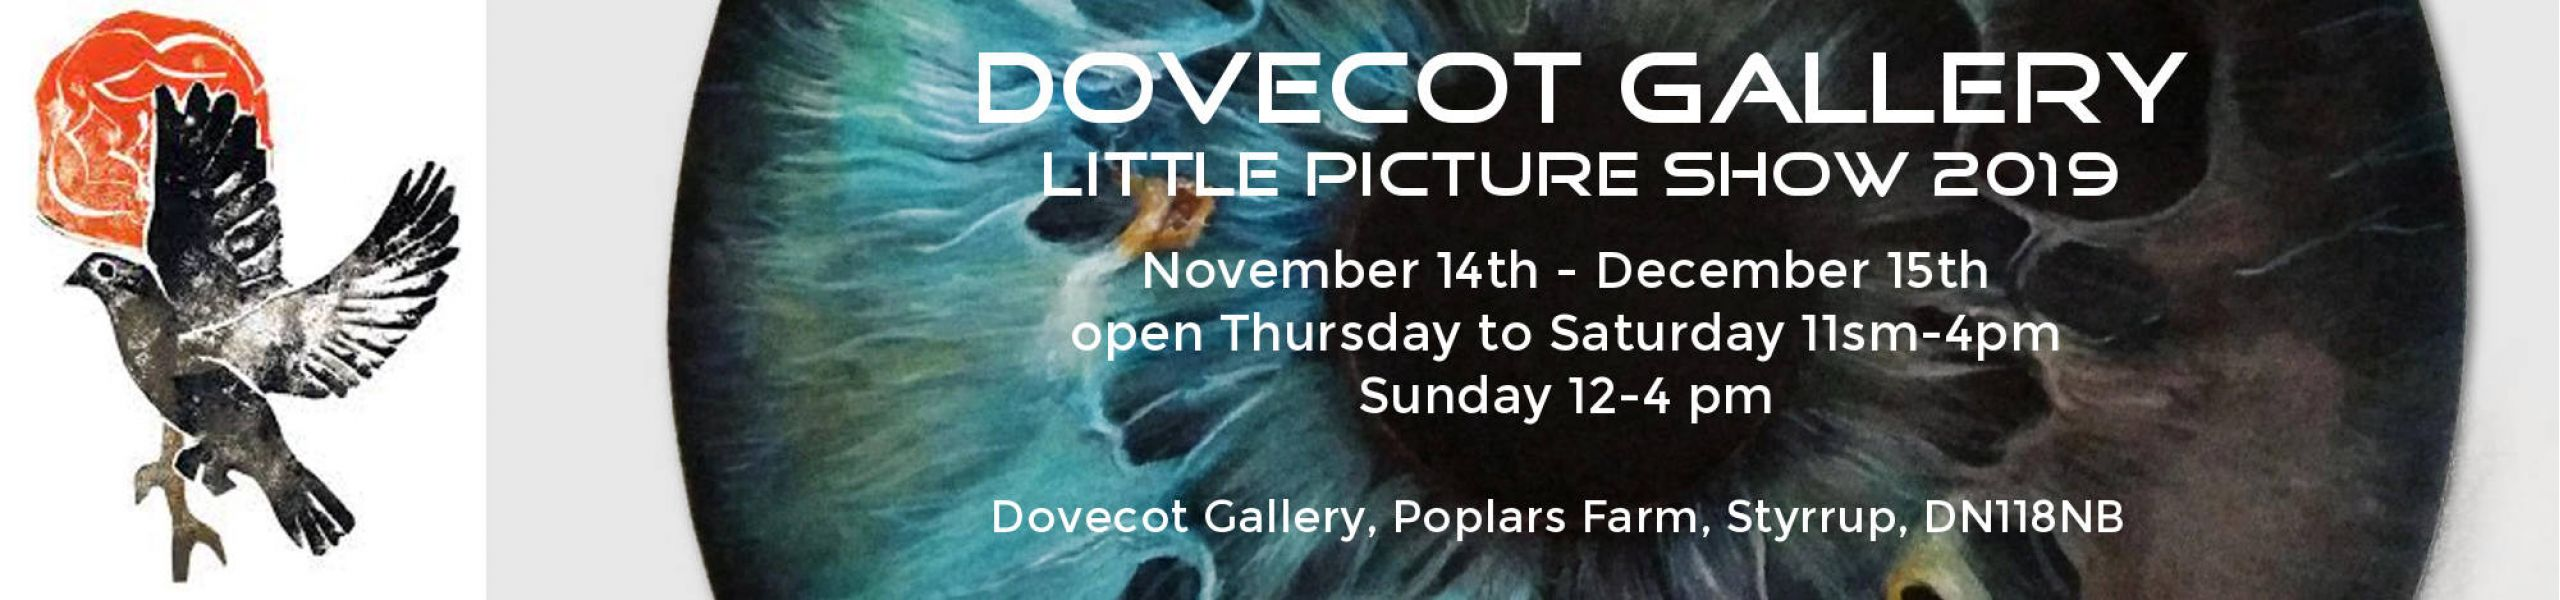 Dovecot Gallery - oncaster - Elisa Neri